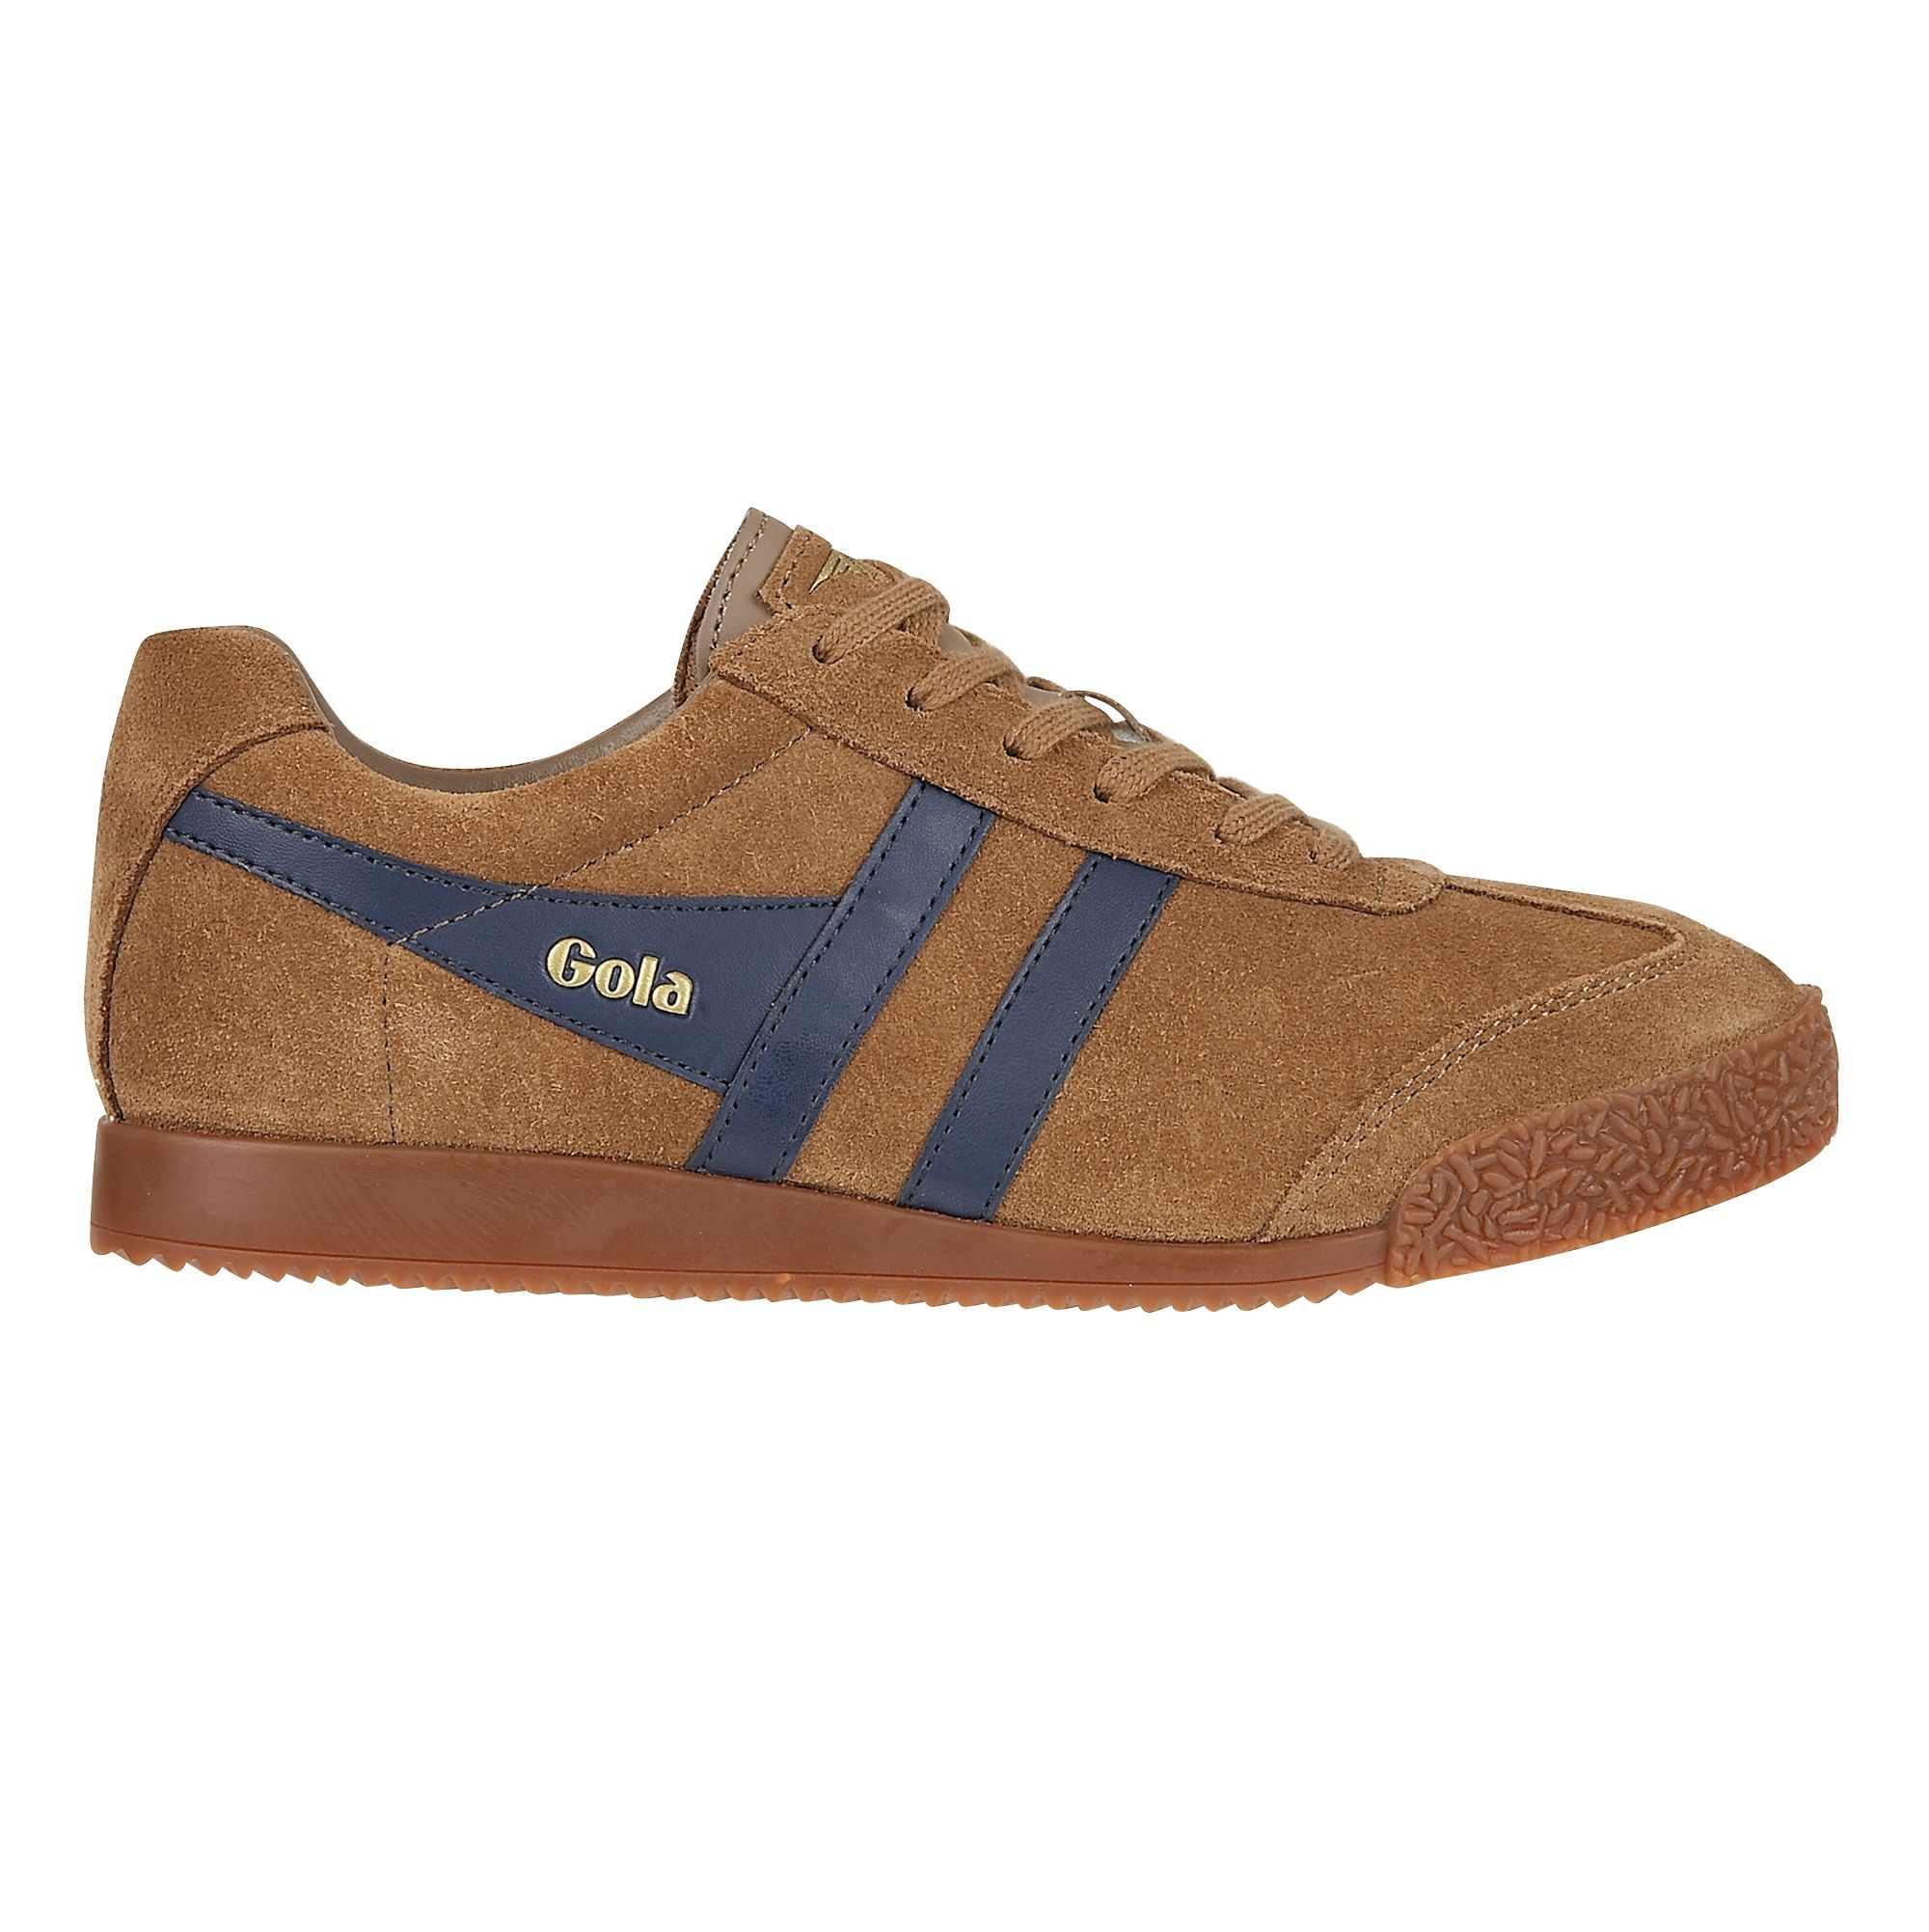 Gola Gola Harrier suede tobacco/navy trainers, Brown